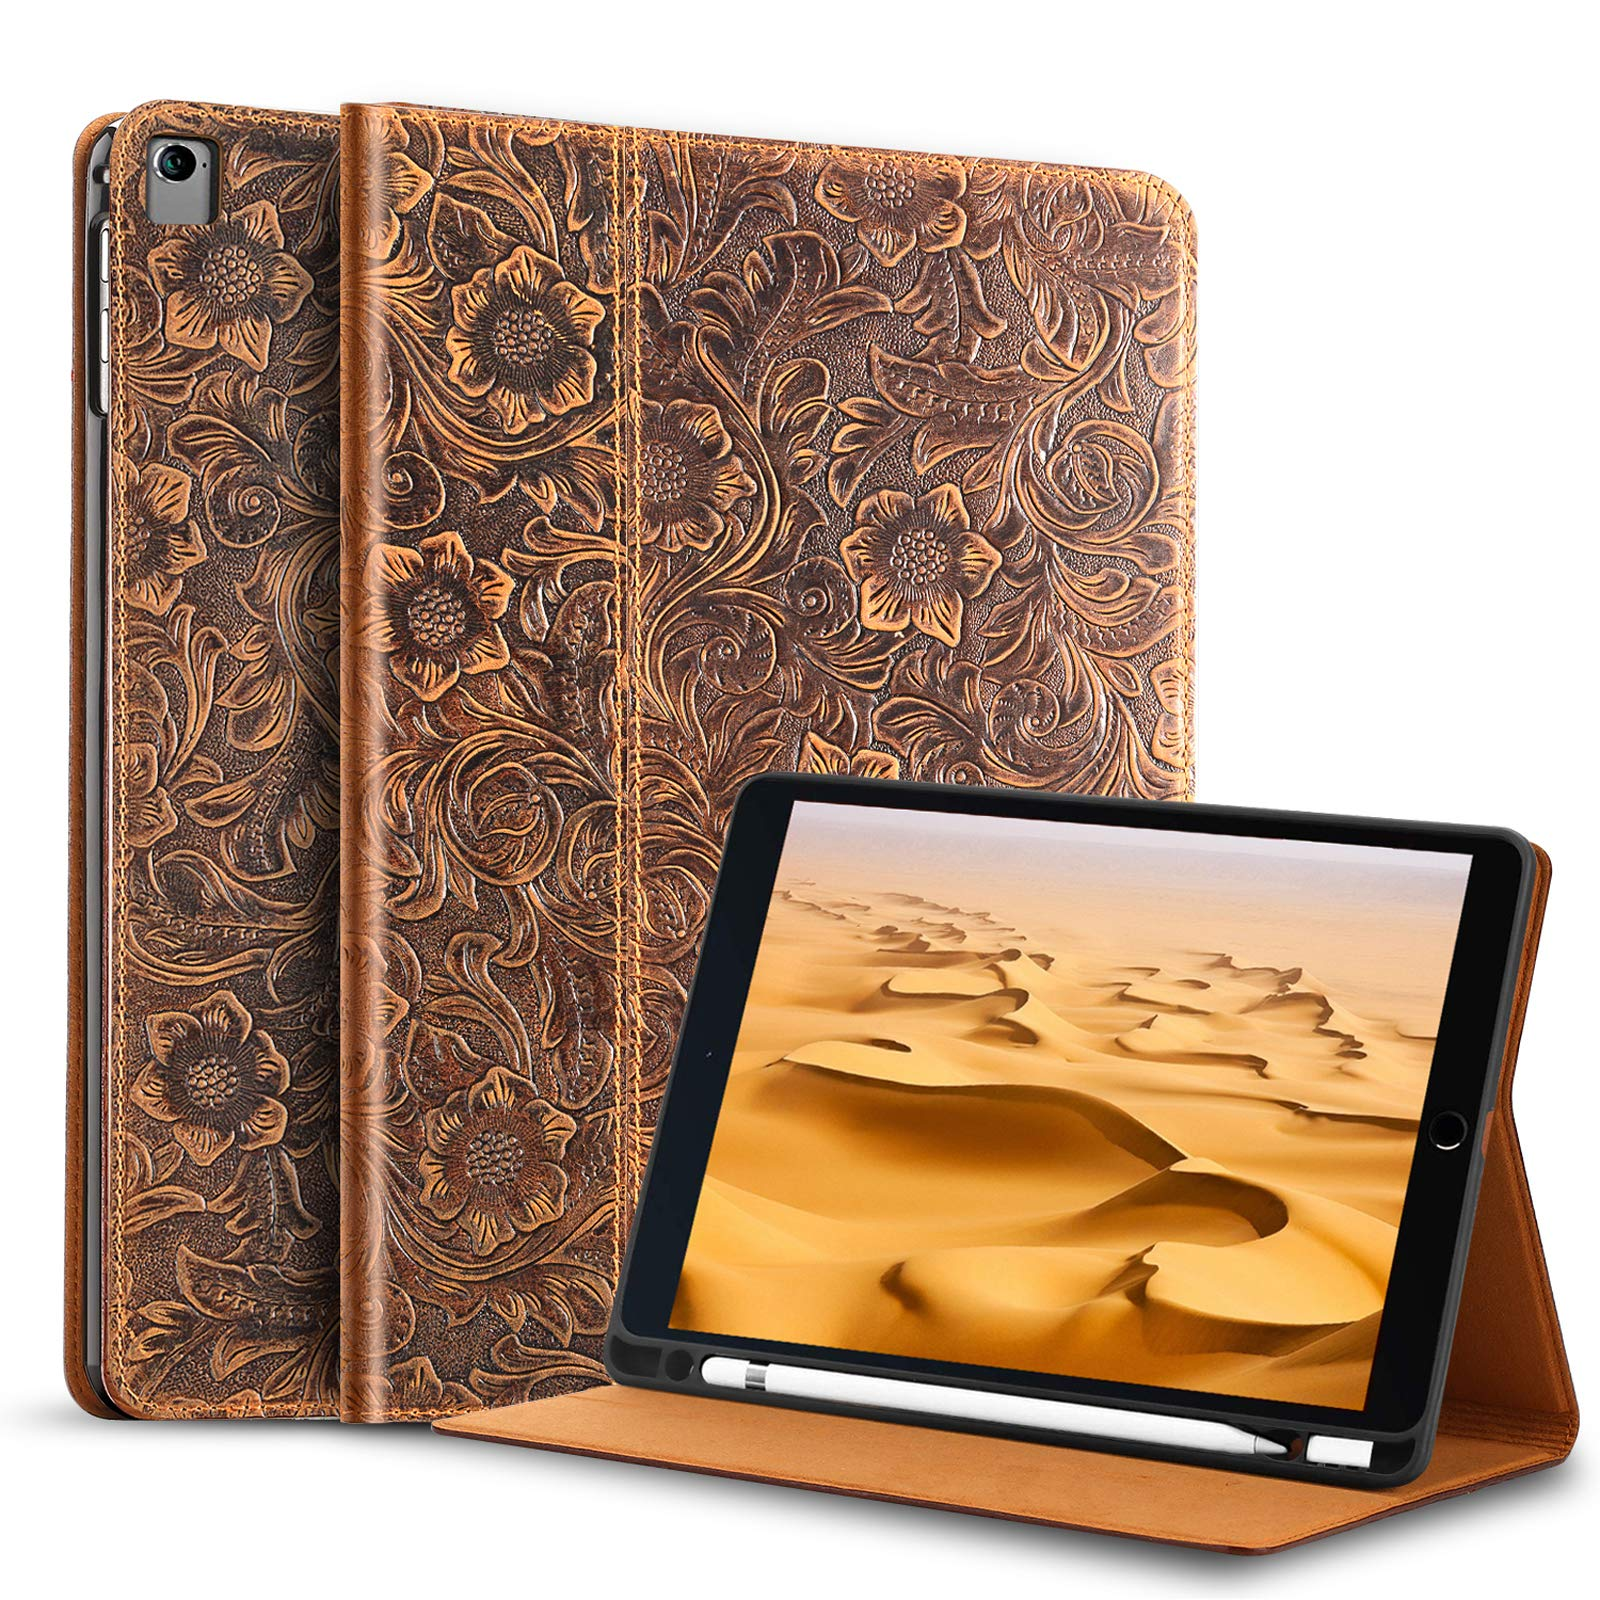 Gexmil Leather iPad Case 9.7 Inch 2018/2017 , with Built-in Apple Pencil Holder,applies Cowhide Folio Cover for iPad 6th Gen / 5th Gen Genuine Leather case,Also applies to iPad Air 2/iPad Air/pro 9.7